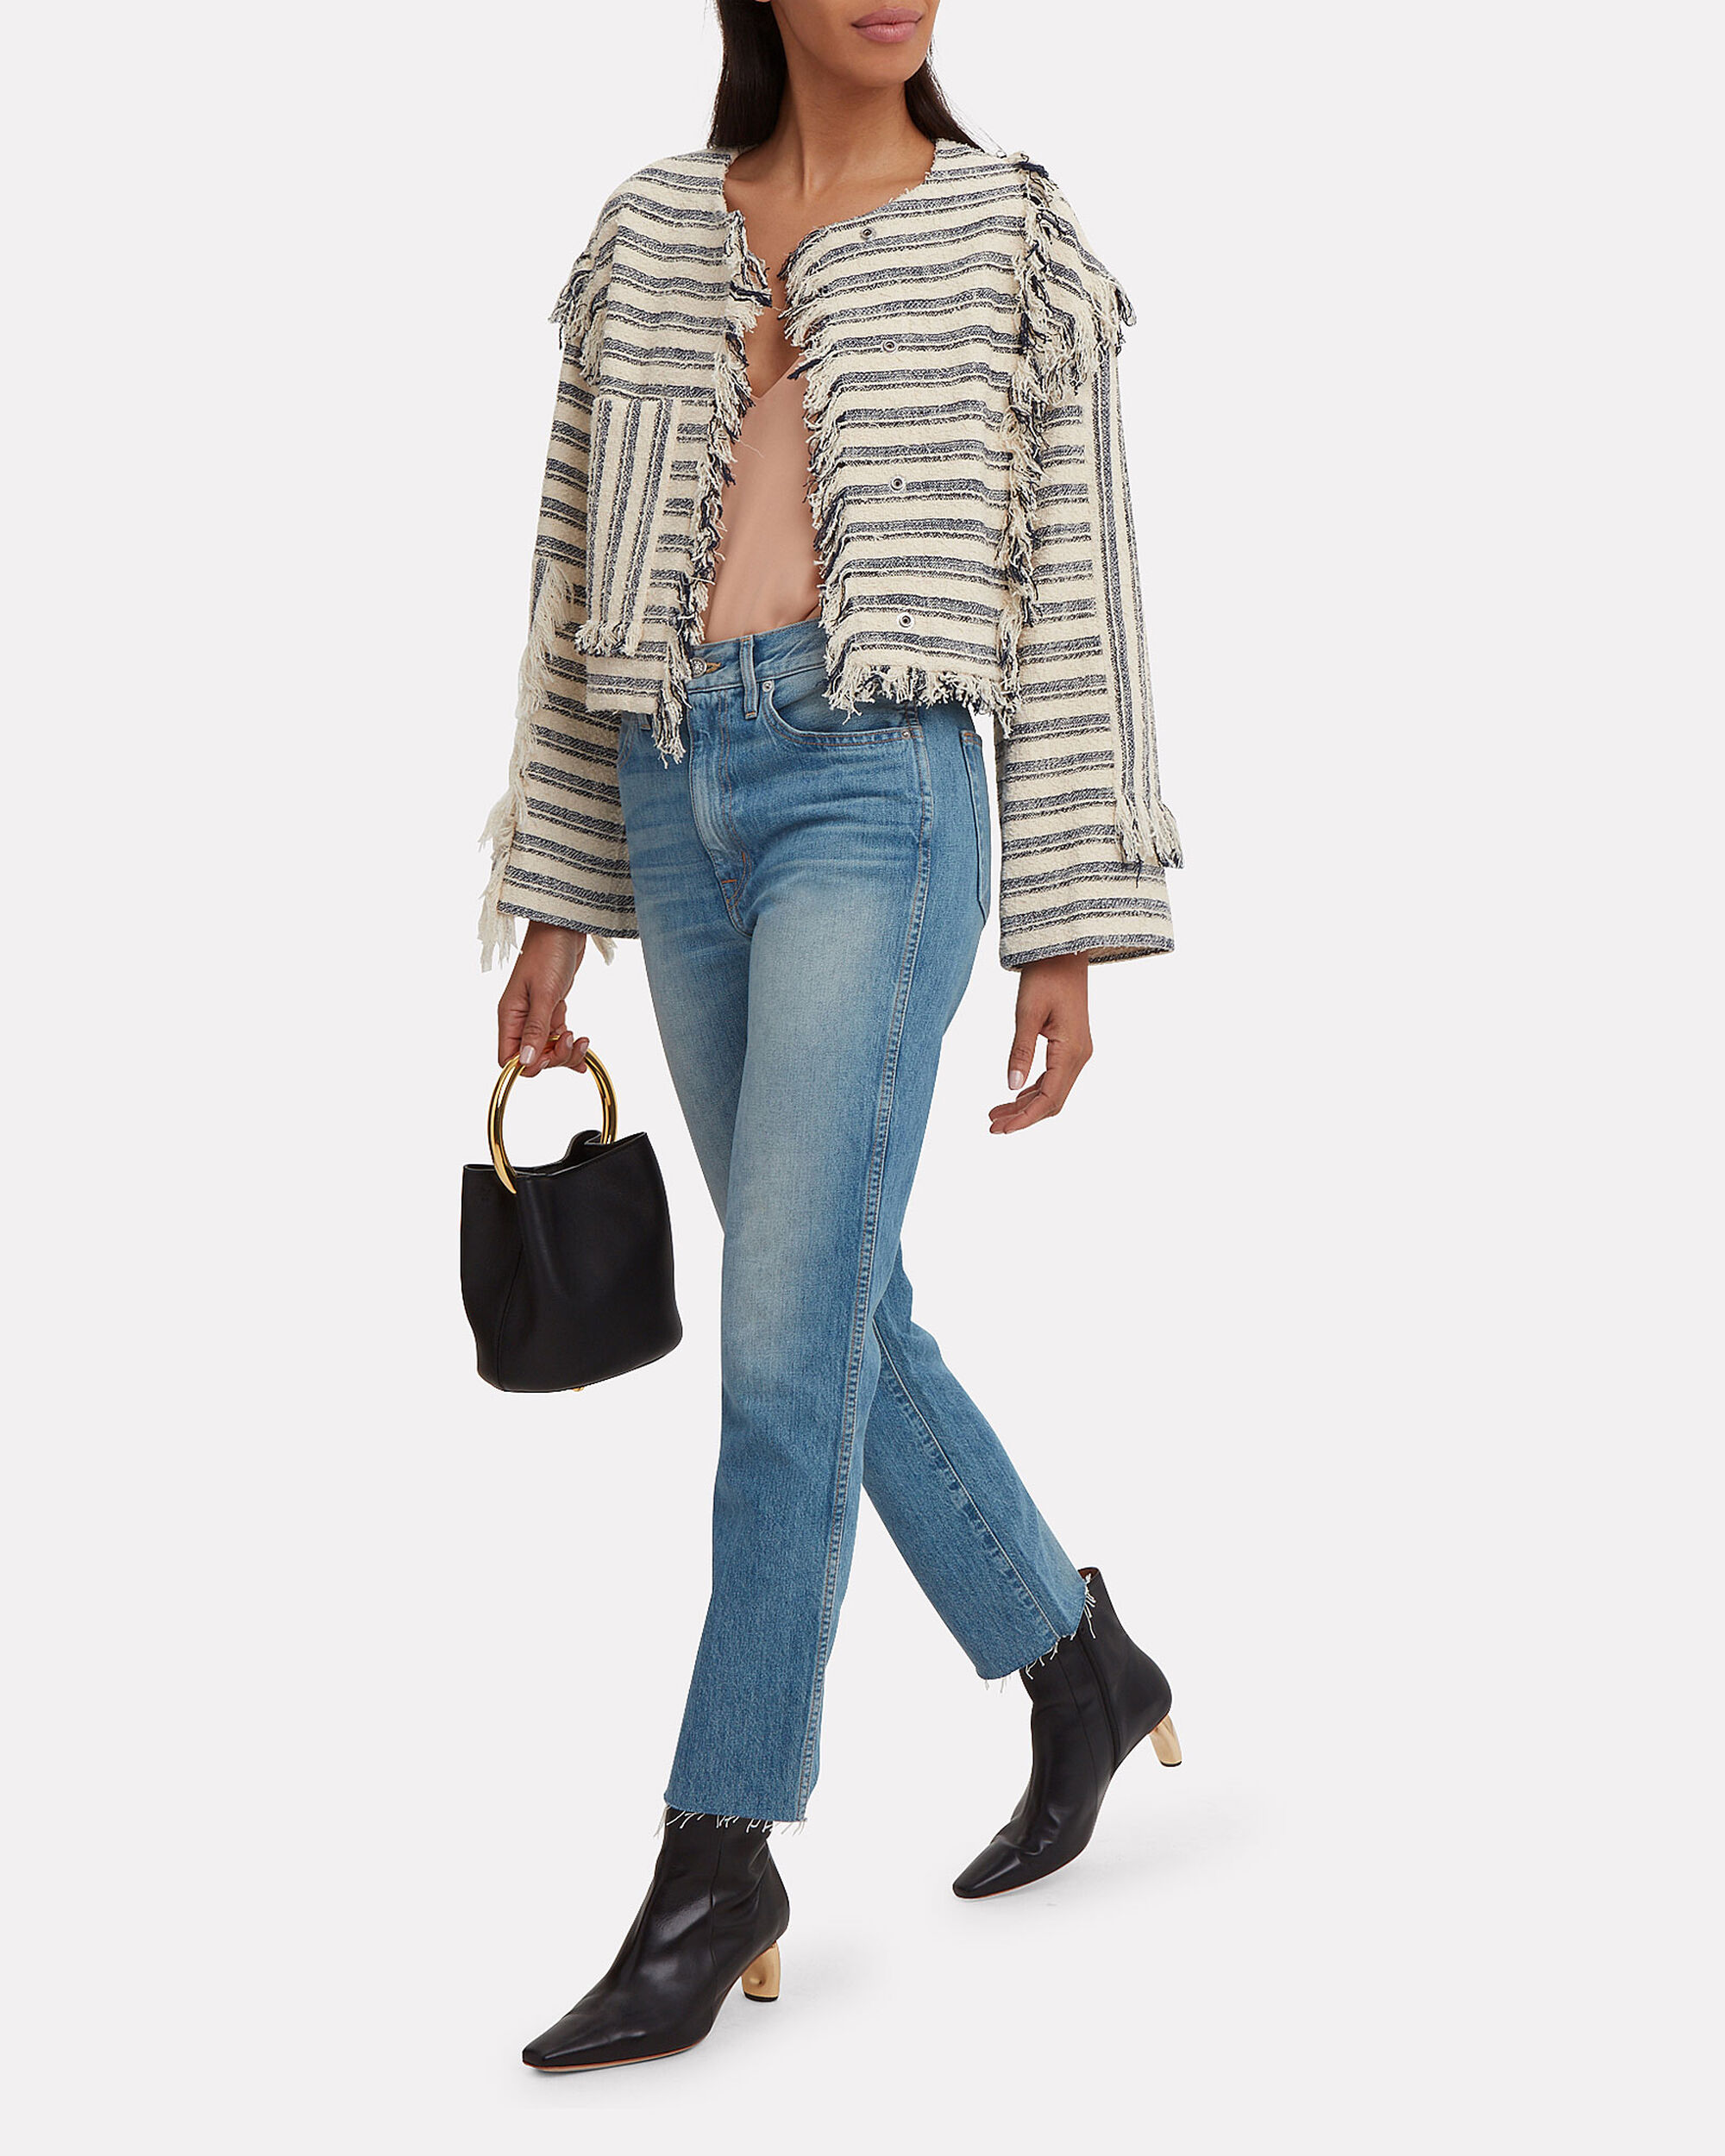 Fringe Knit Jacket, BEIGE/NAVY, hi-res